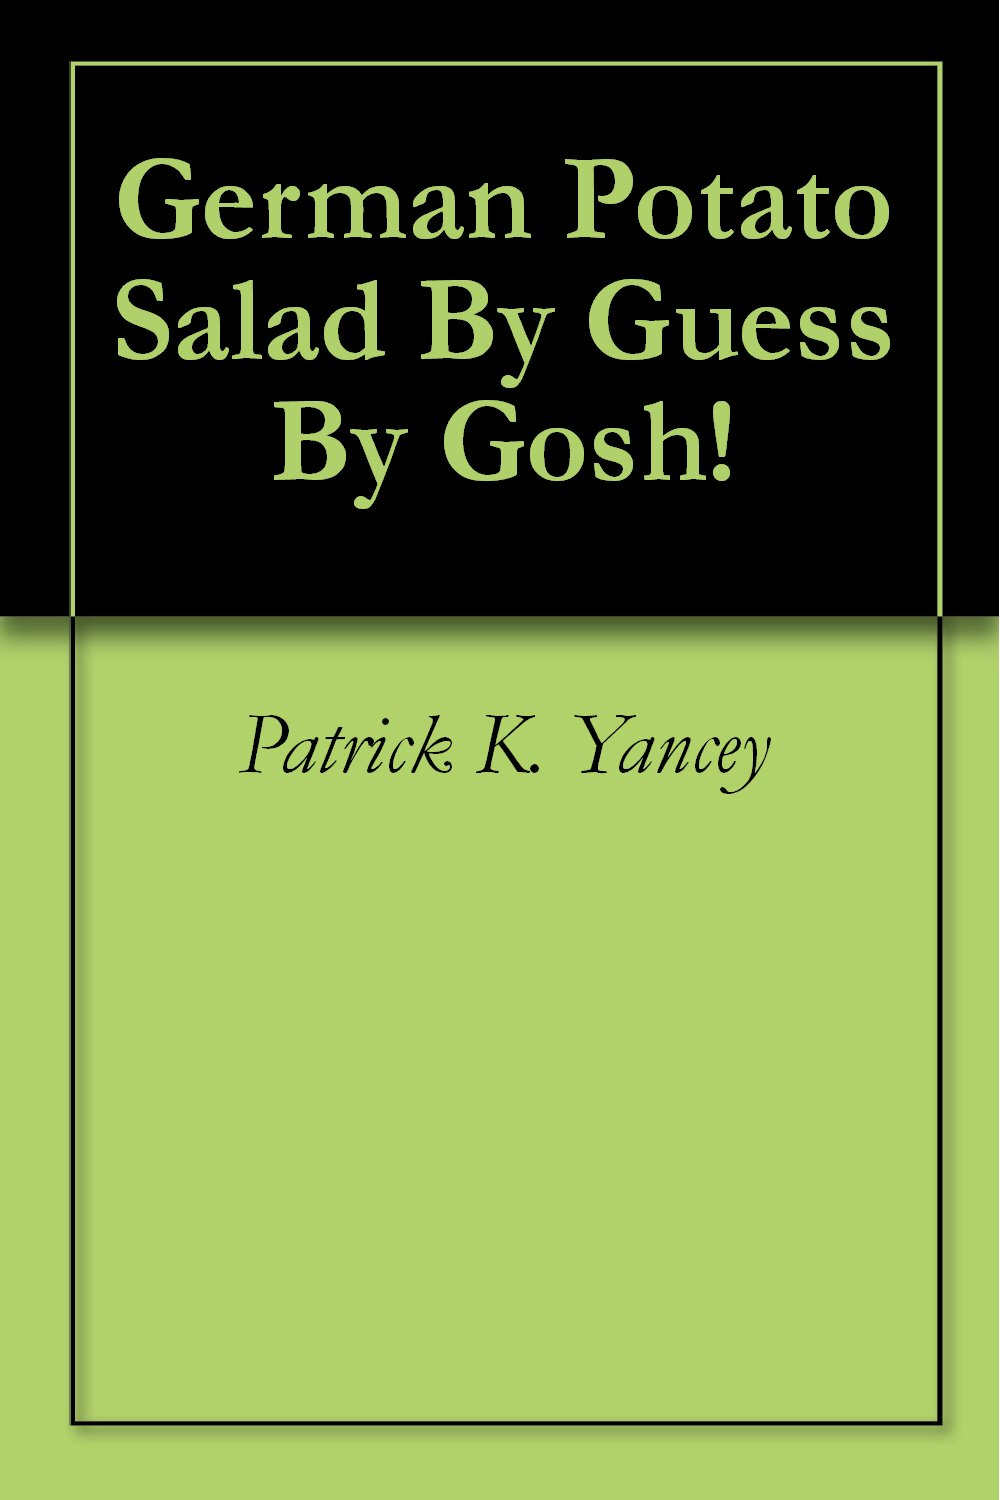 German Potato Salad By Guess By Gosh! (English Edition)